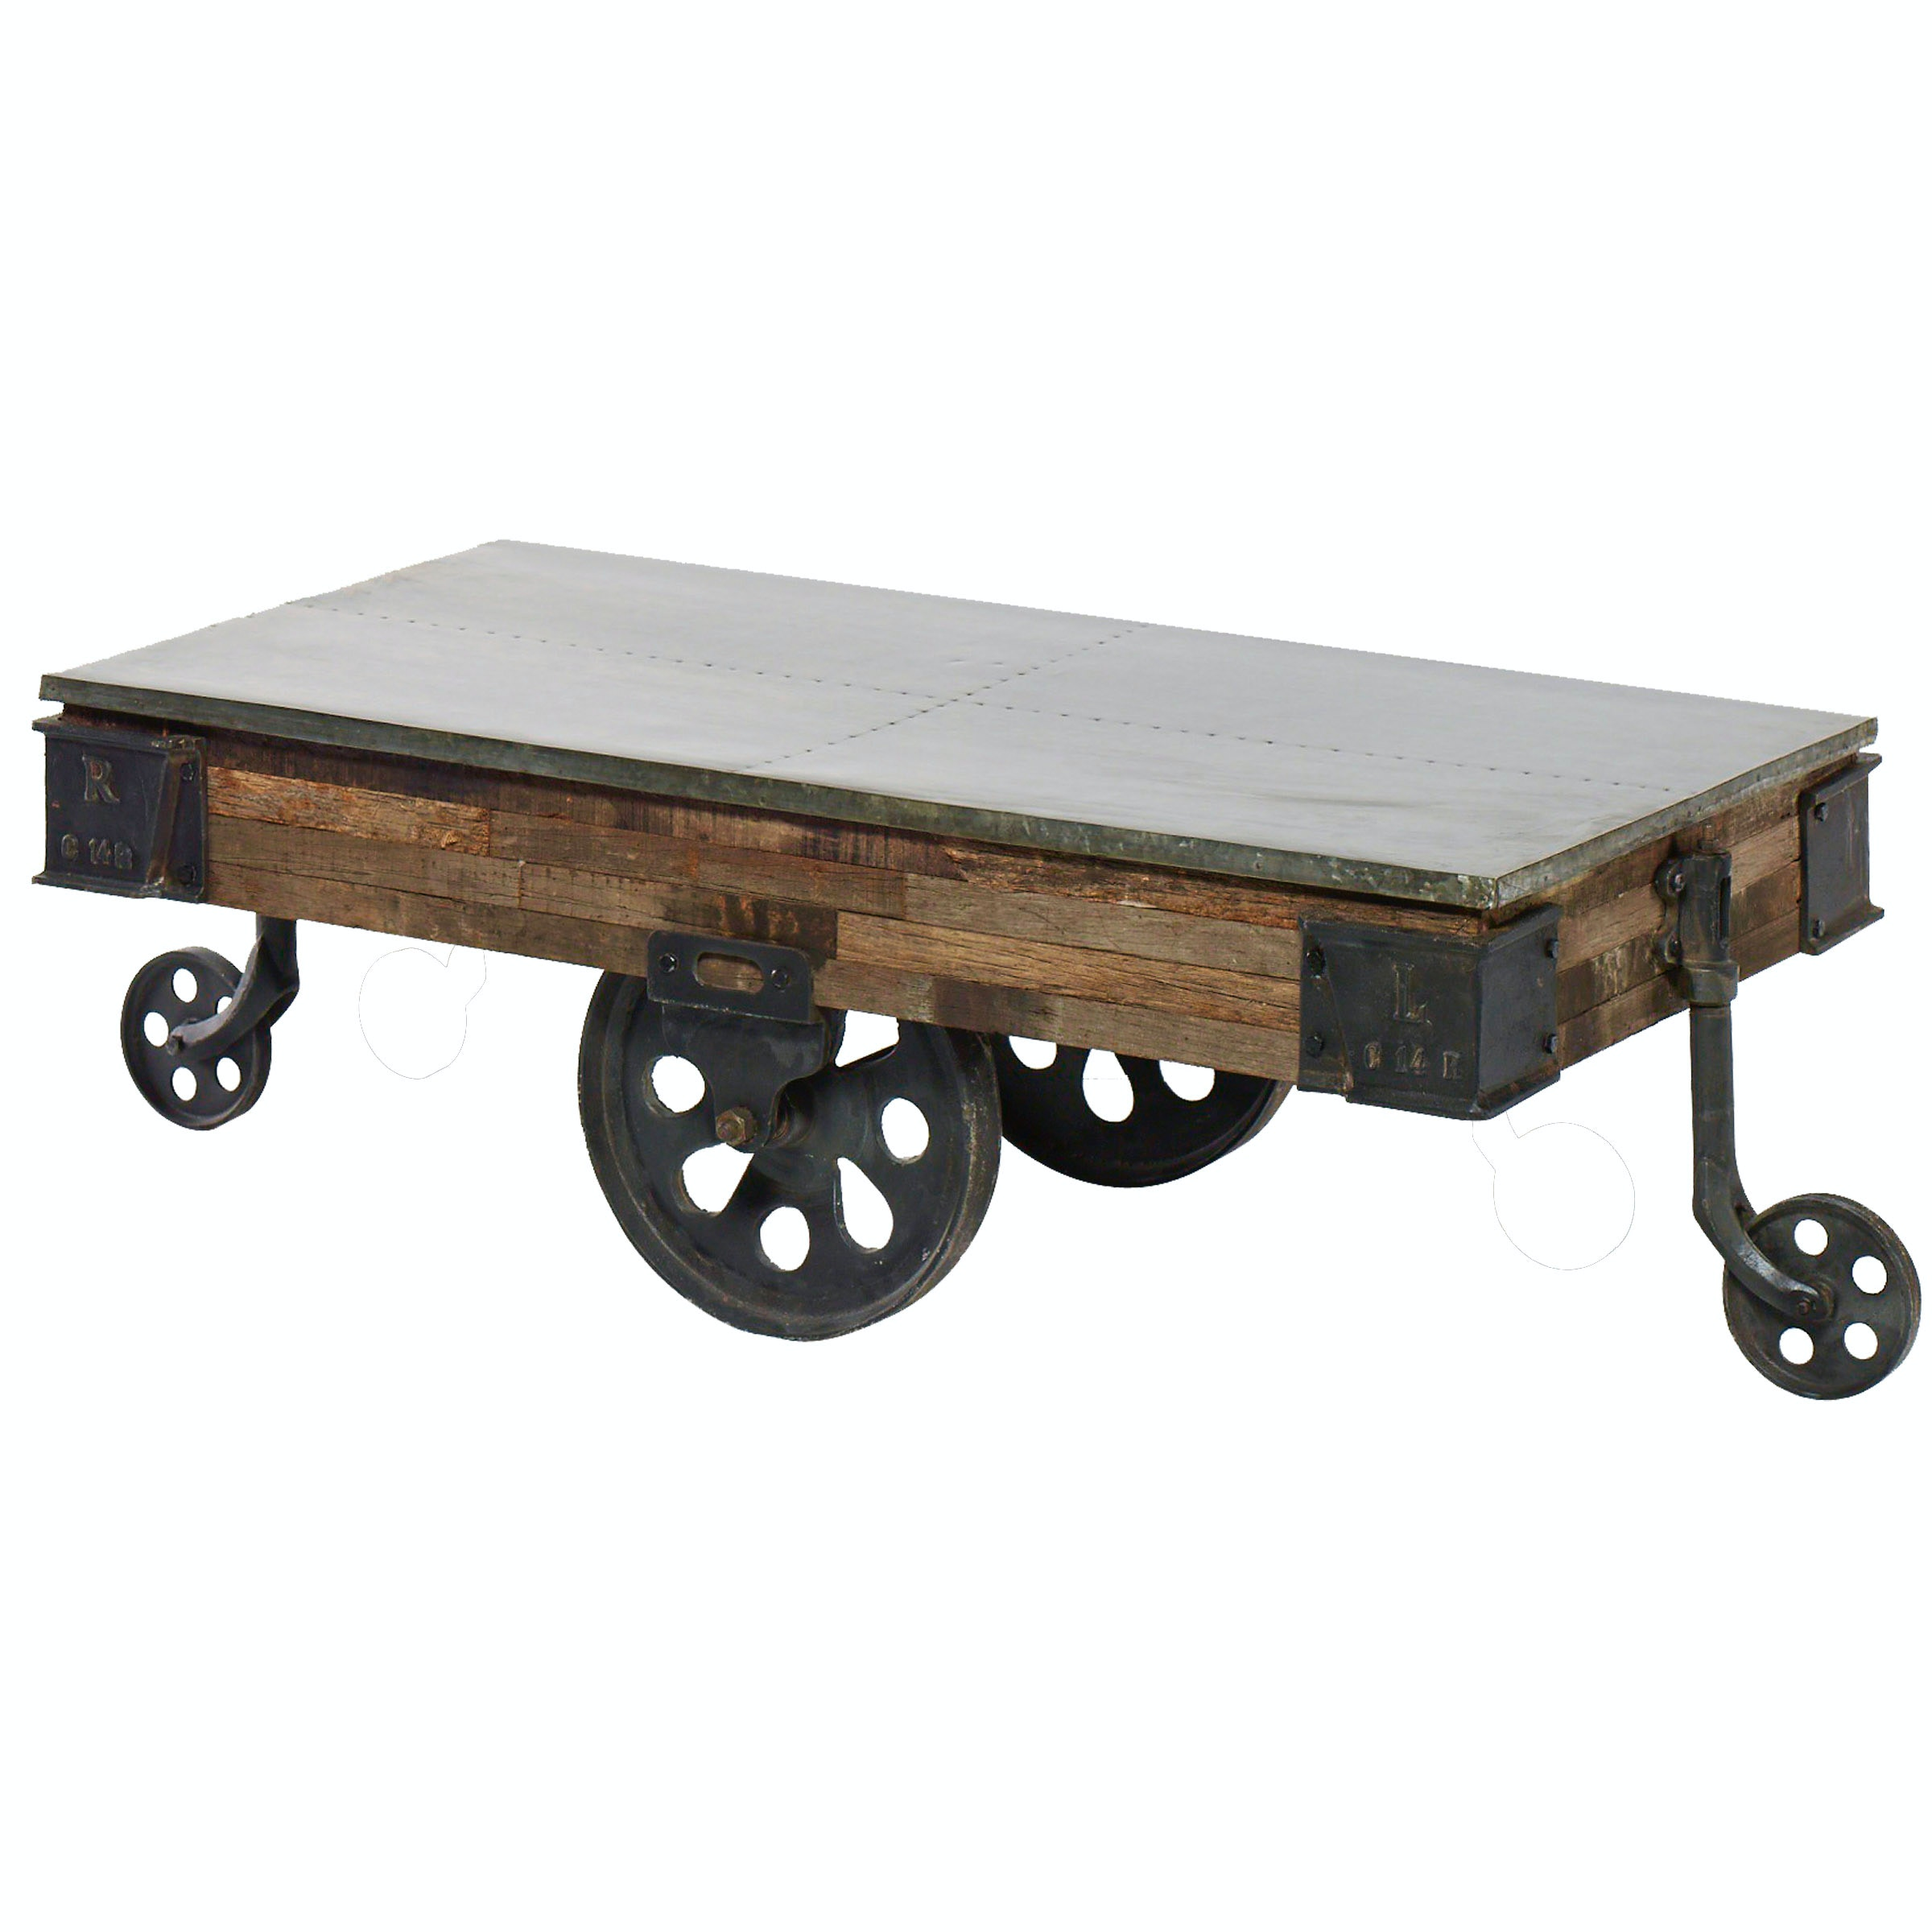 Harp And Finial MACKINAL COFFEE TABLE | Reclaimed Wood With Galvanized  Metal Top On Iron Wheels